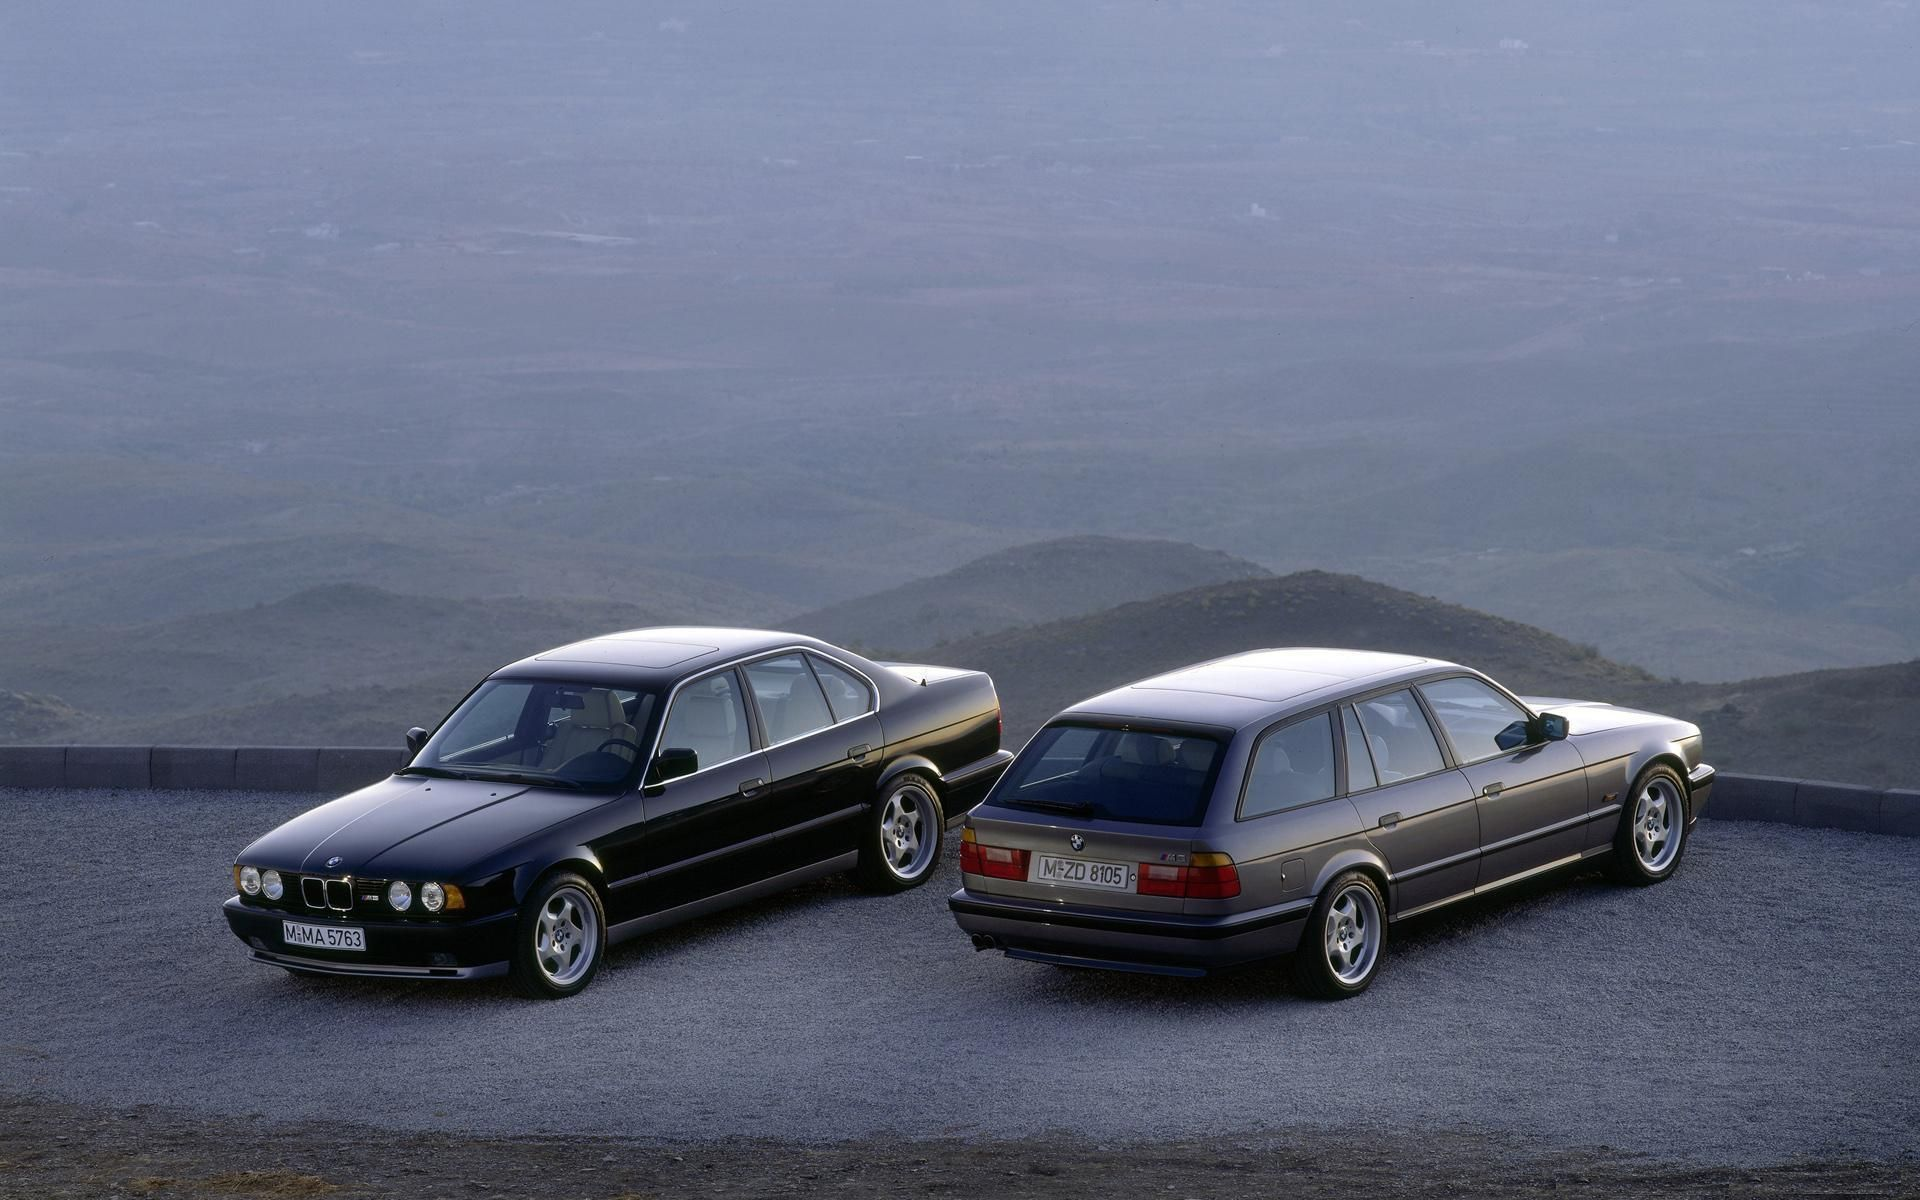 European Bmw M5 Sedan And Touring Bmw E34 Bmw Bmw M5